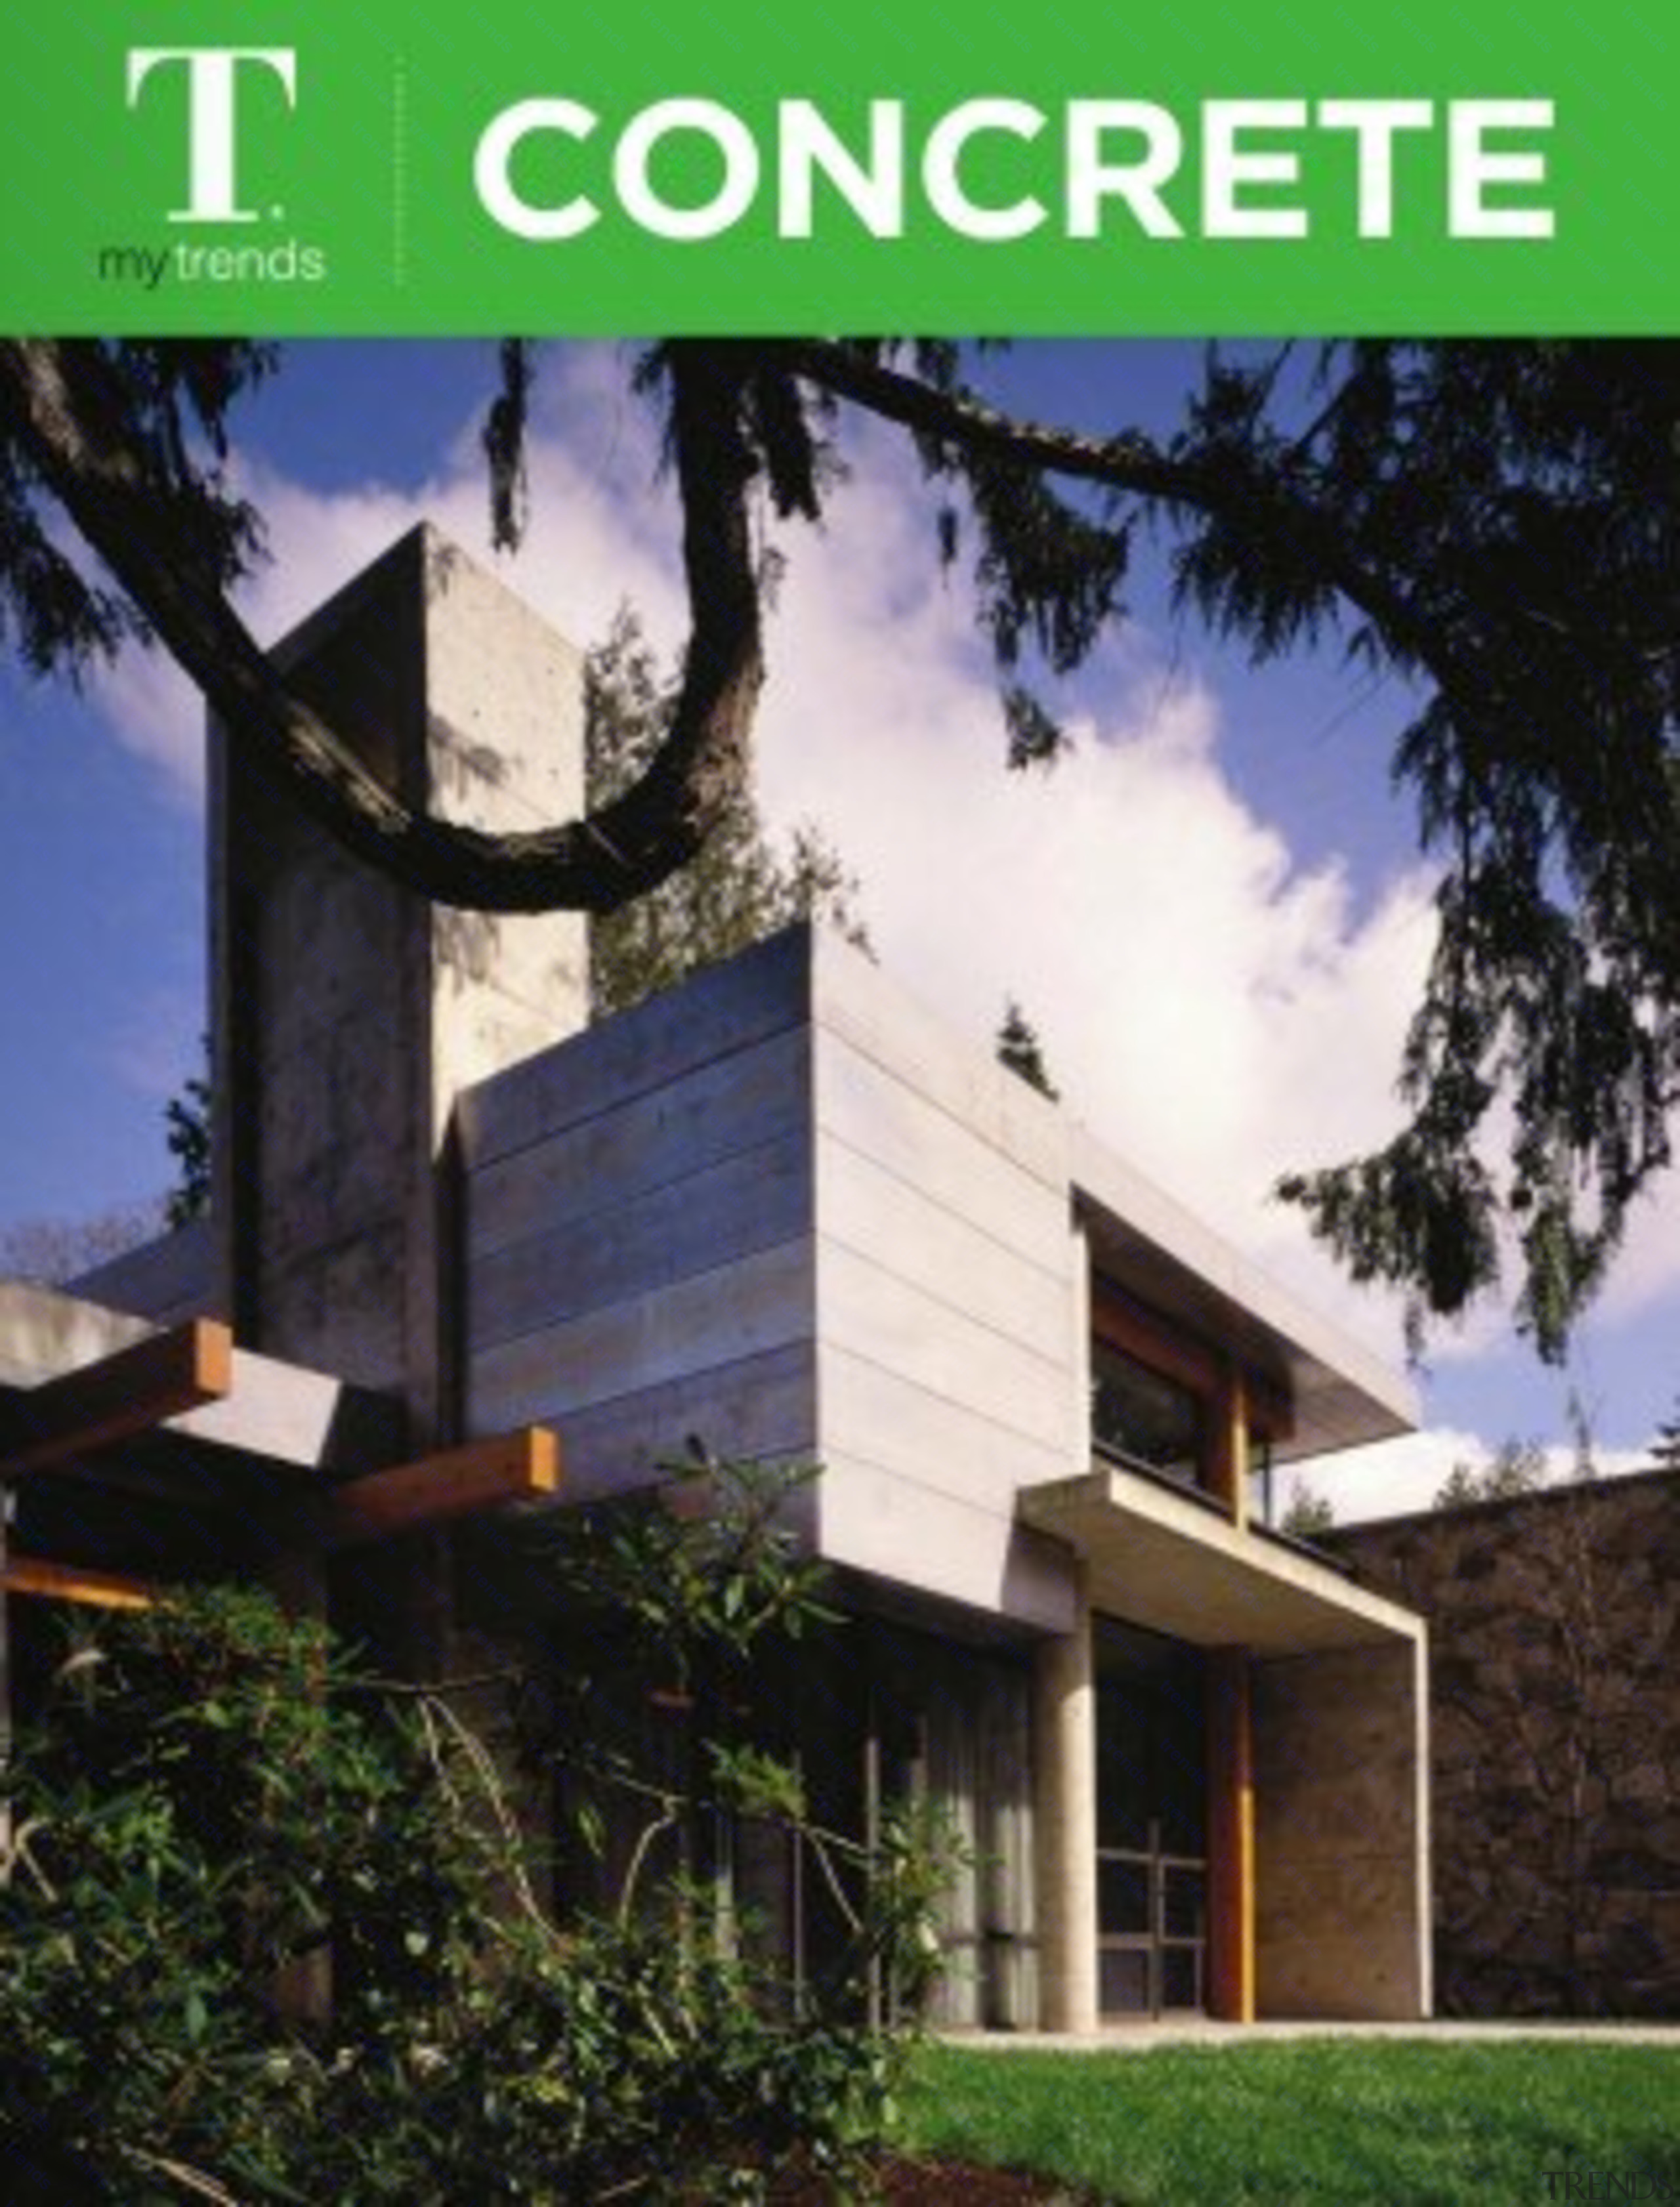 Concrete Ideas architecture, elevation, facade, home, house, property, real estate, roof, black